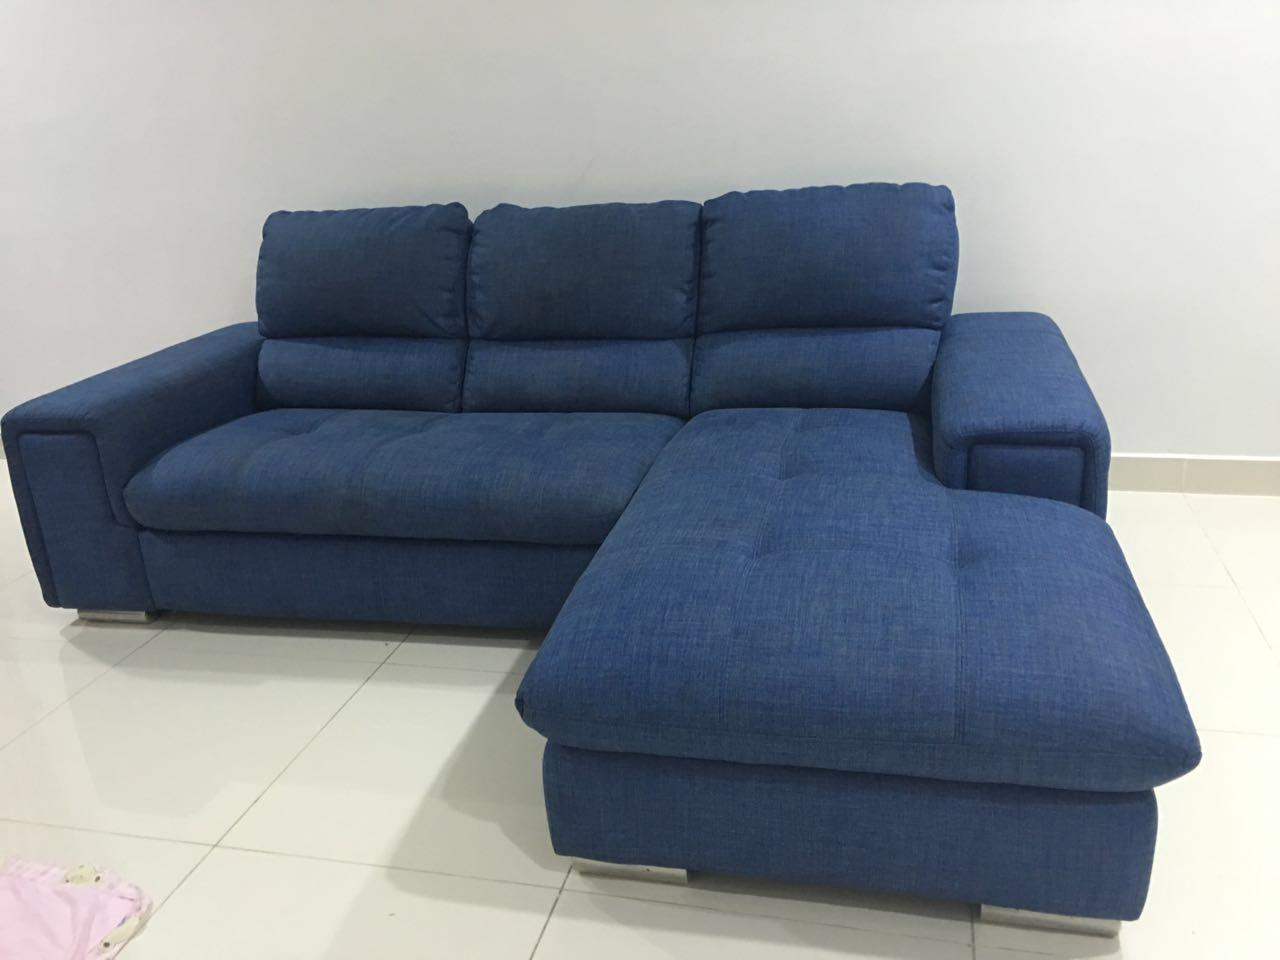 Hatch Brand Sofa For Sale 8 Months Old